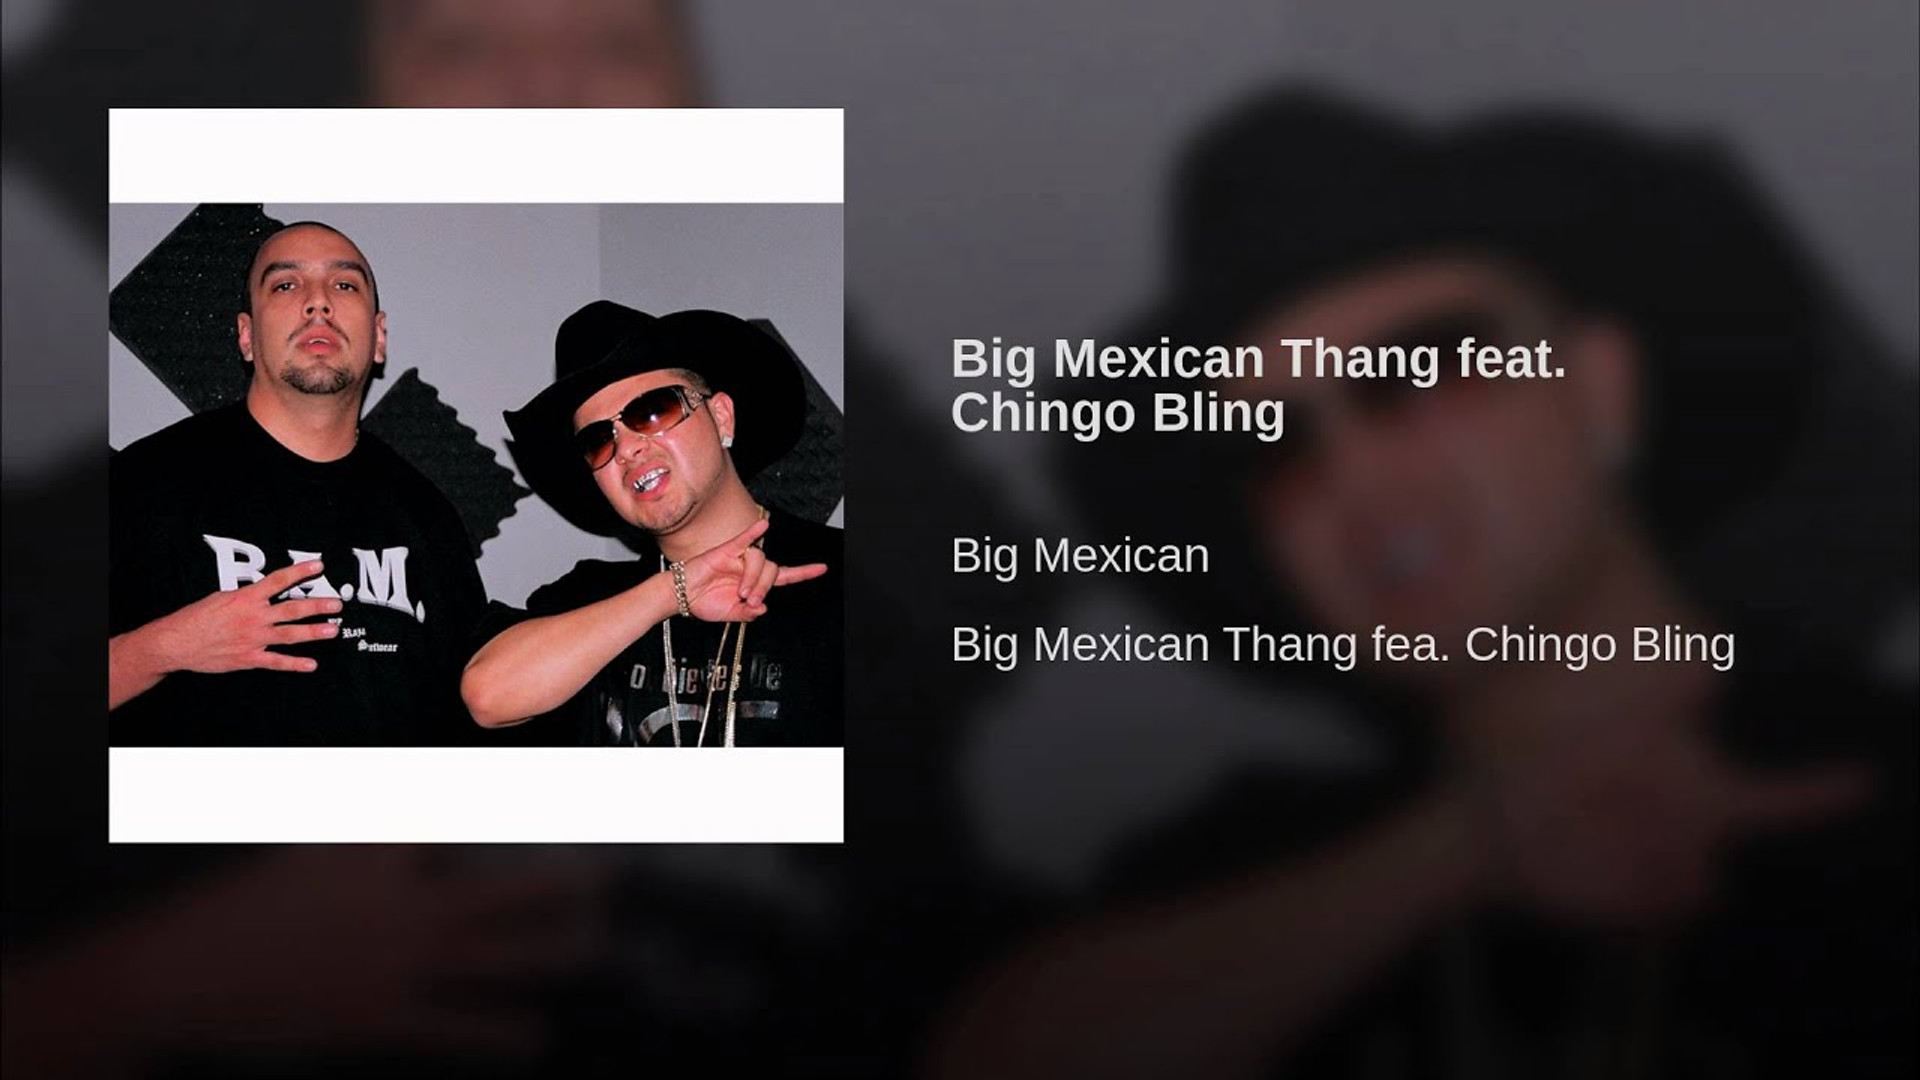 Big Mex (ft. Chingo Bling) - Big Mexican Thang (2015)